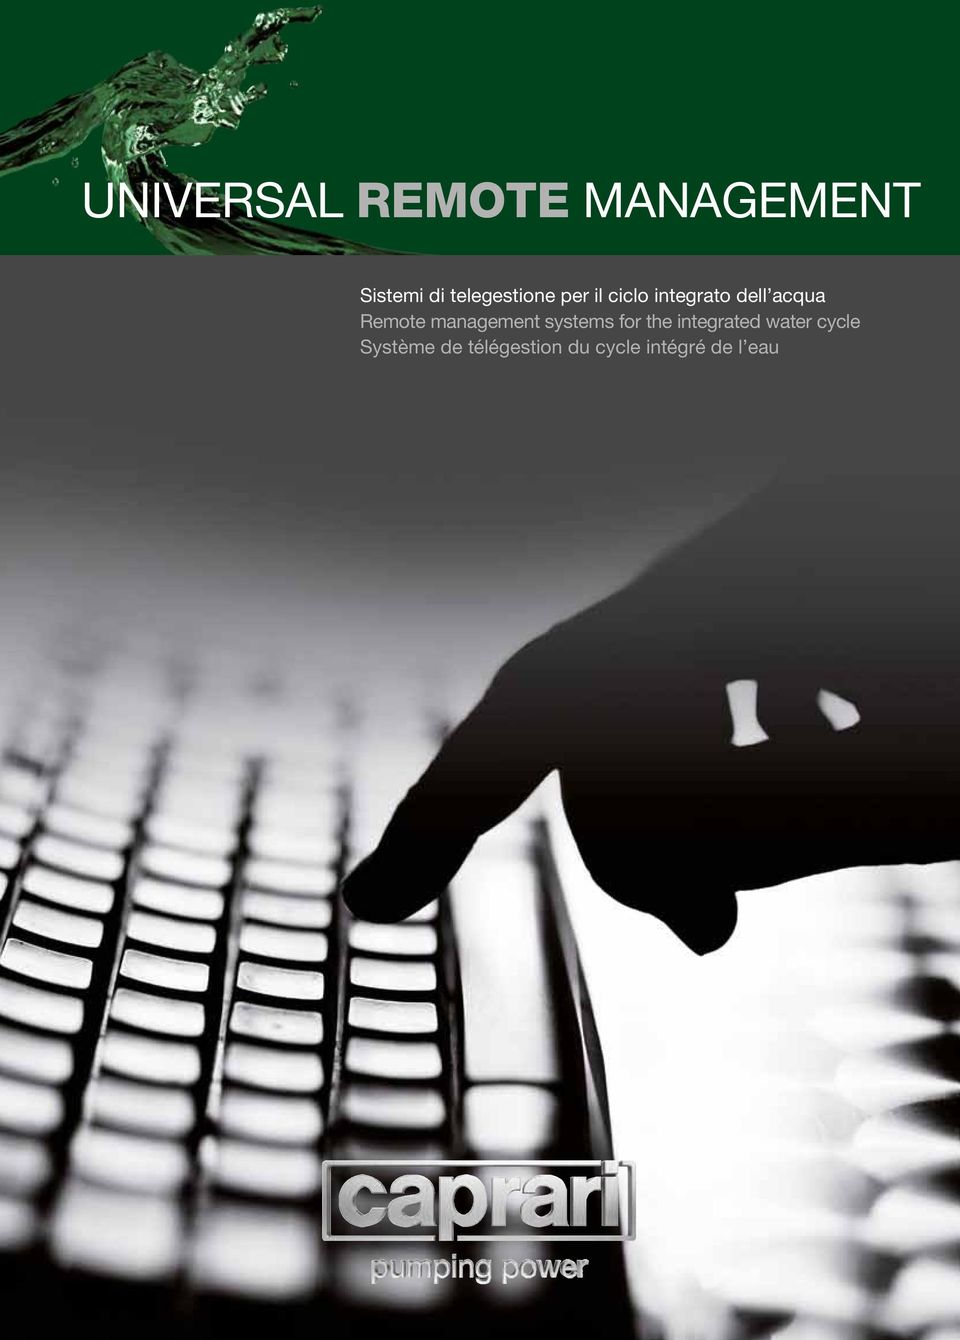 Remote management systems for the integrated